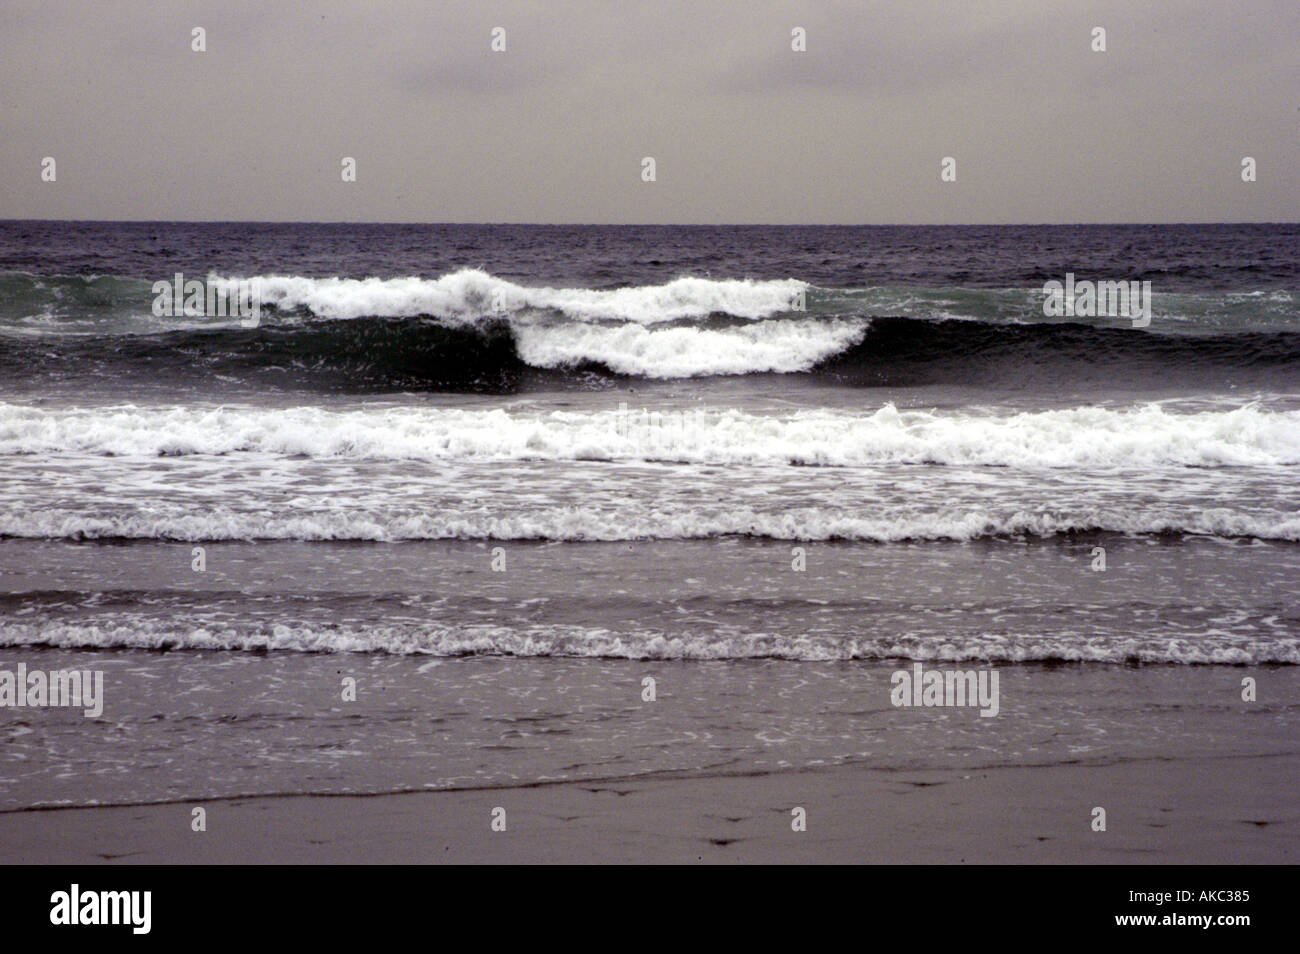 Waves breaking on cloudy dreary day - Stock Image